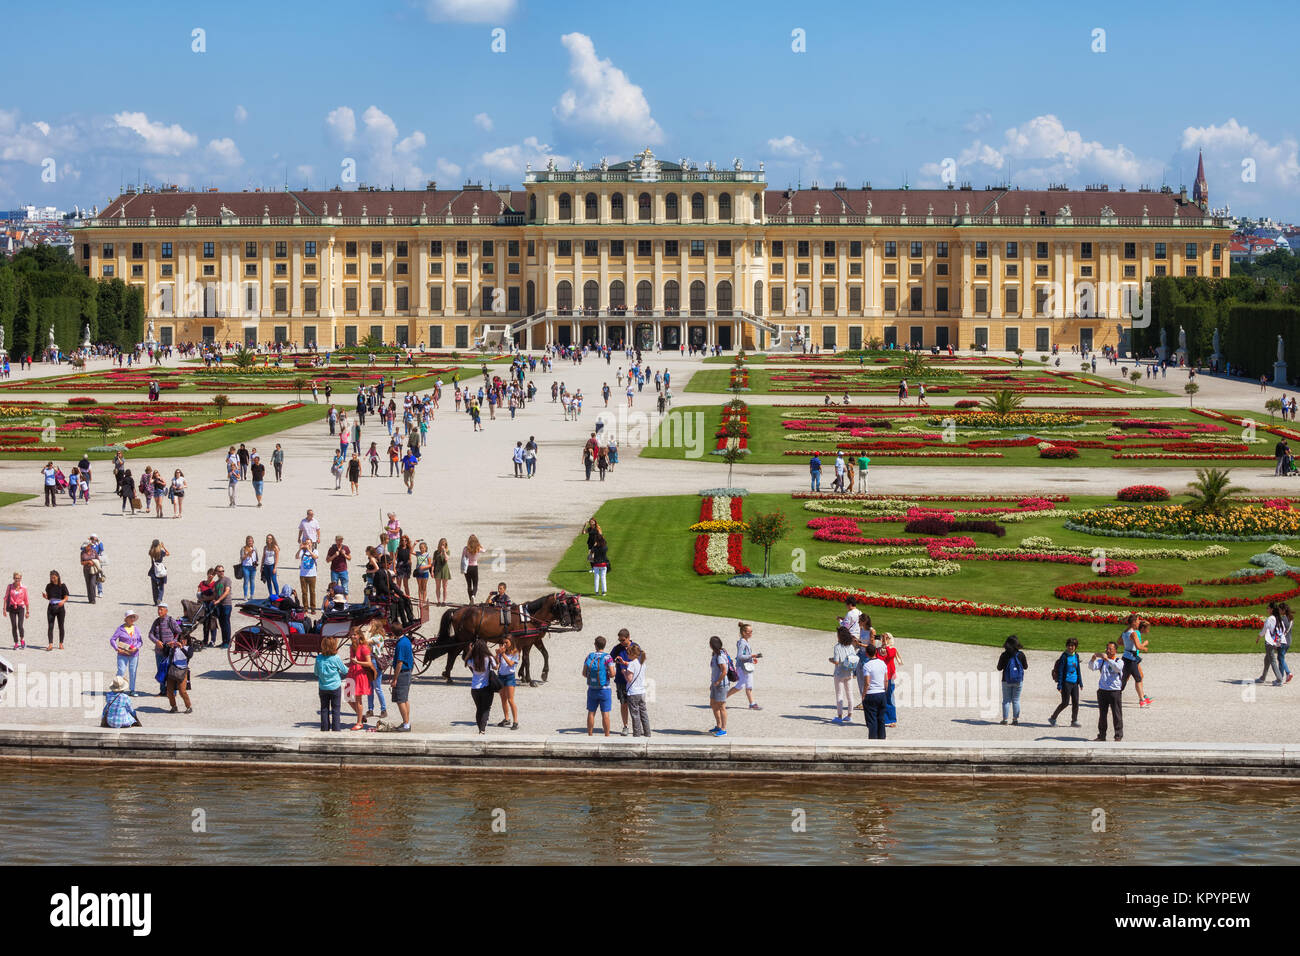 Schonbrunn Palace, imperial summer Baroque residence and gardens, city of Vienna, Austria, Europe - Stock Image